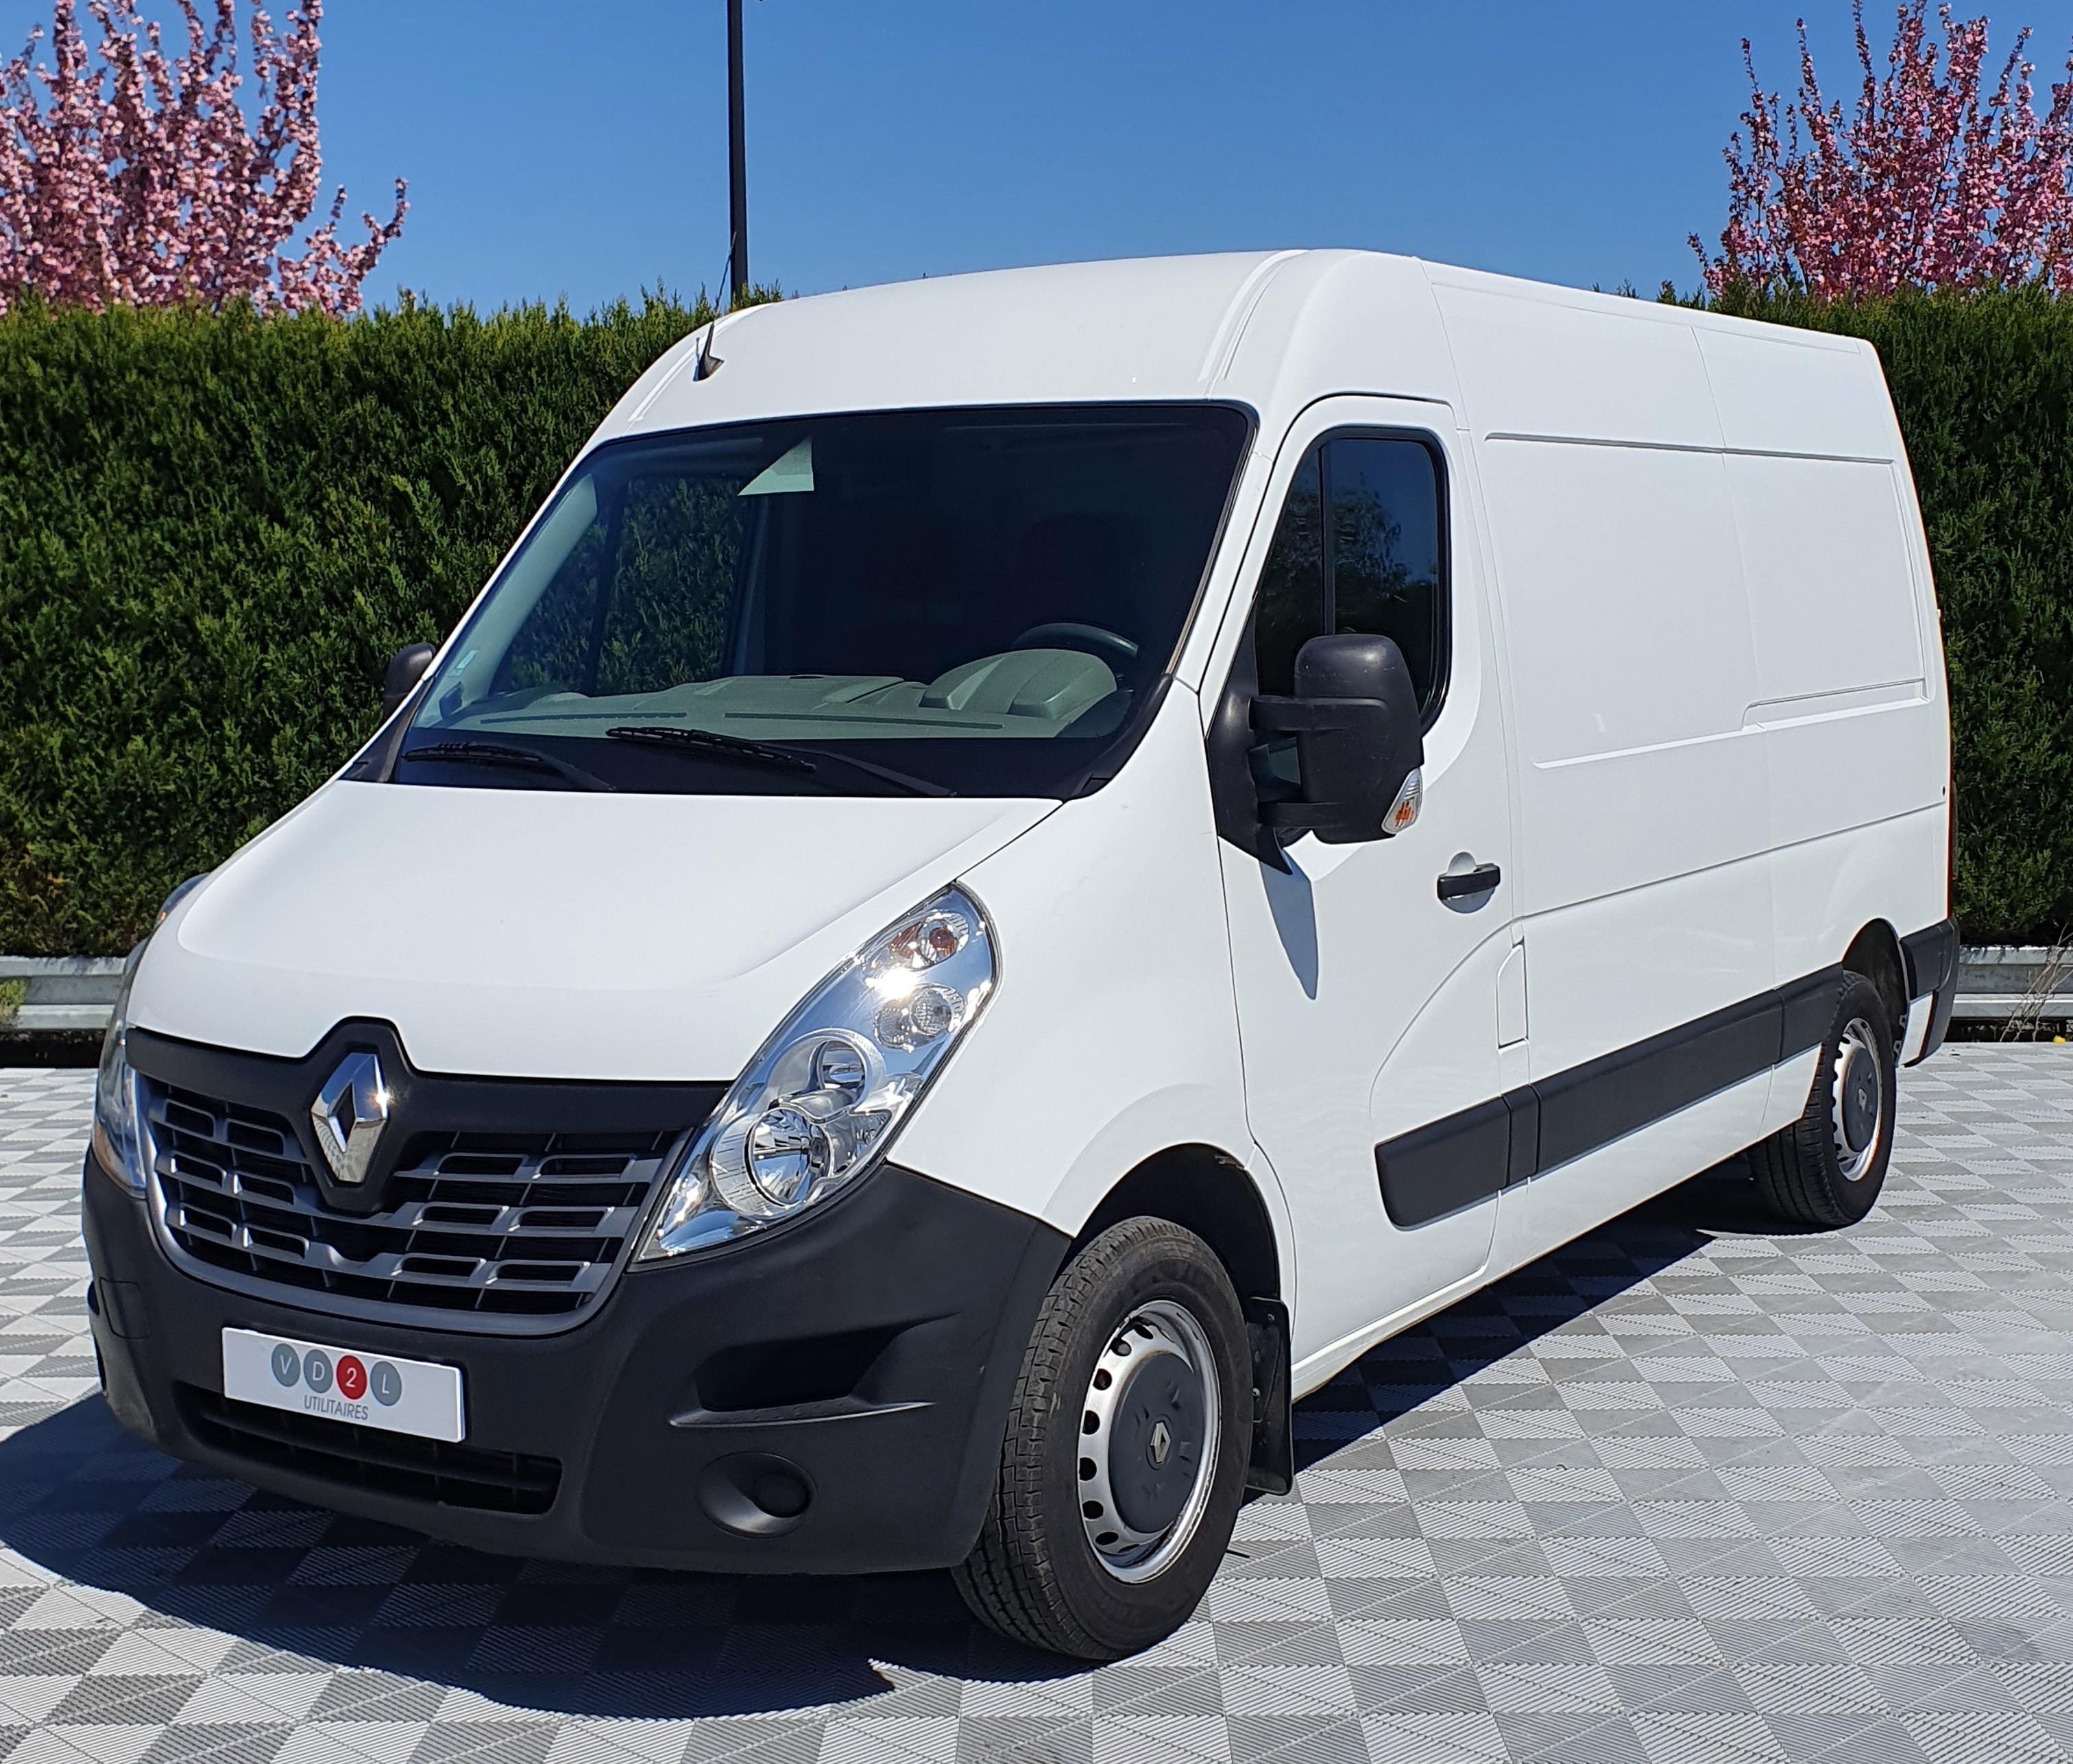 RENAULT MASTER FOURGON F3500 L2H2 DCI130 GRAND CONFORT 10M3 d'occasion